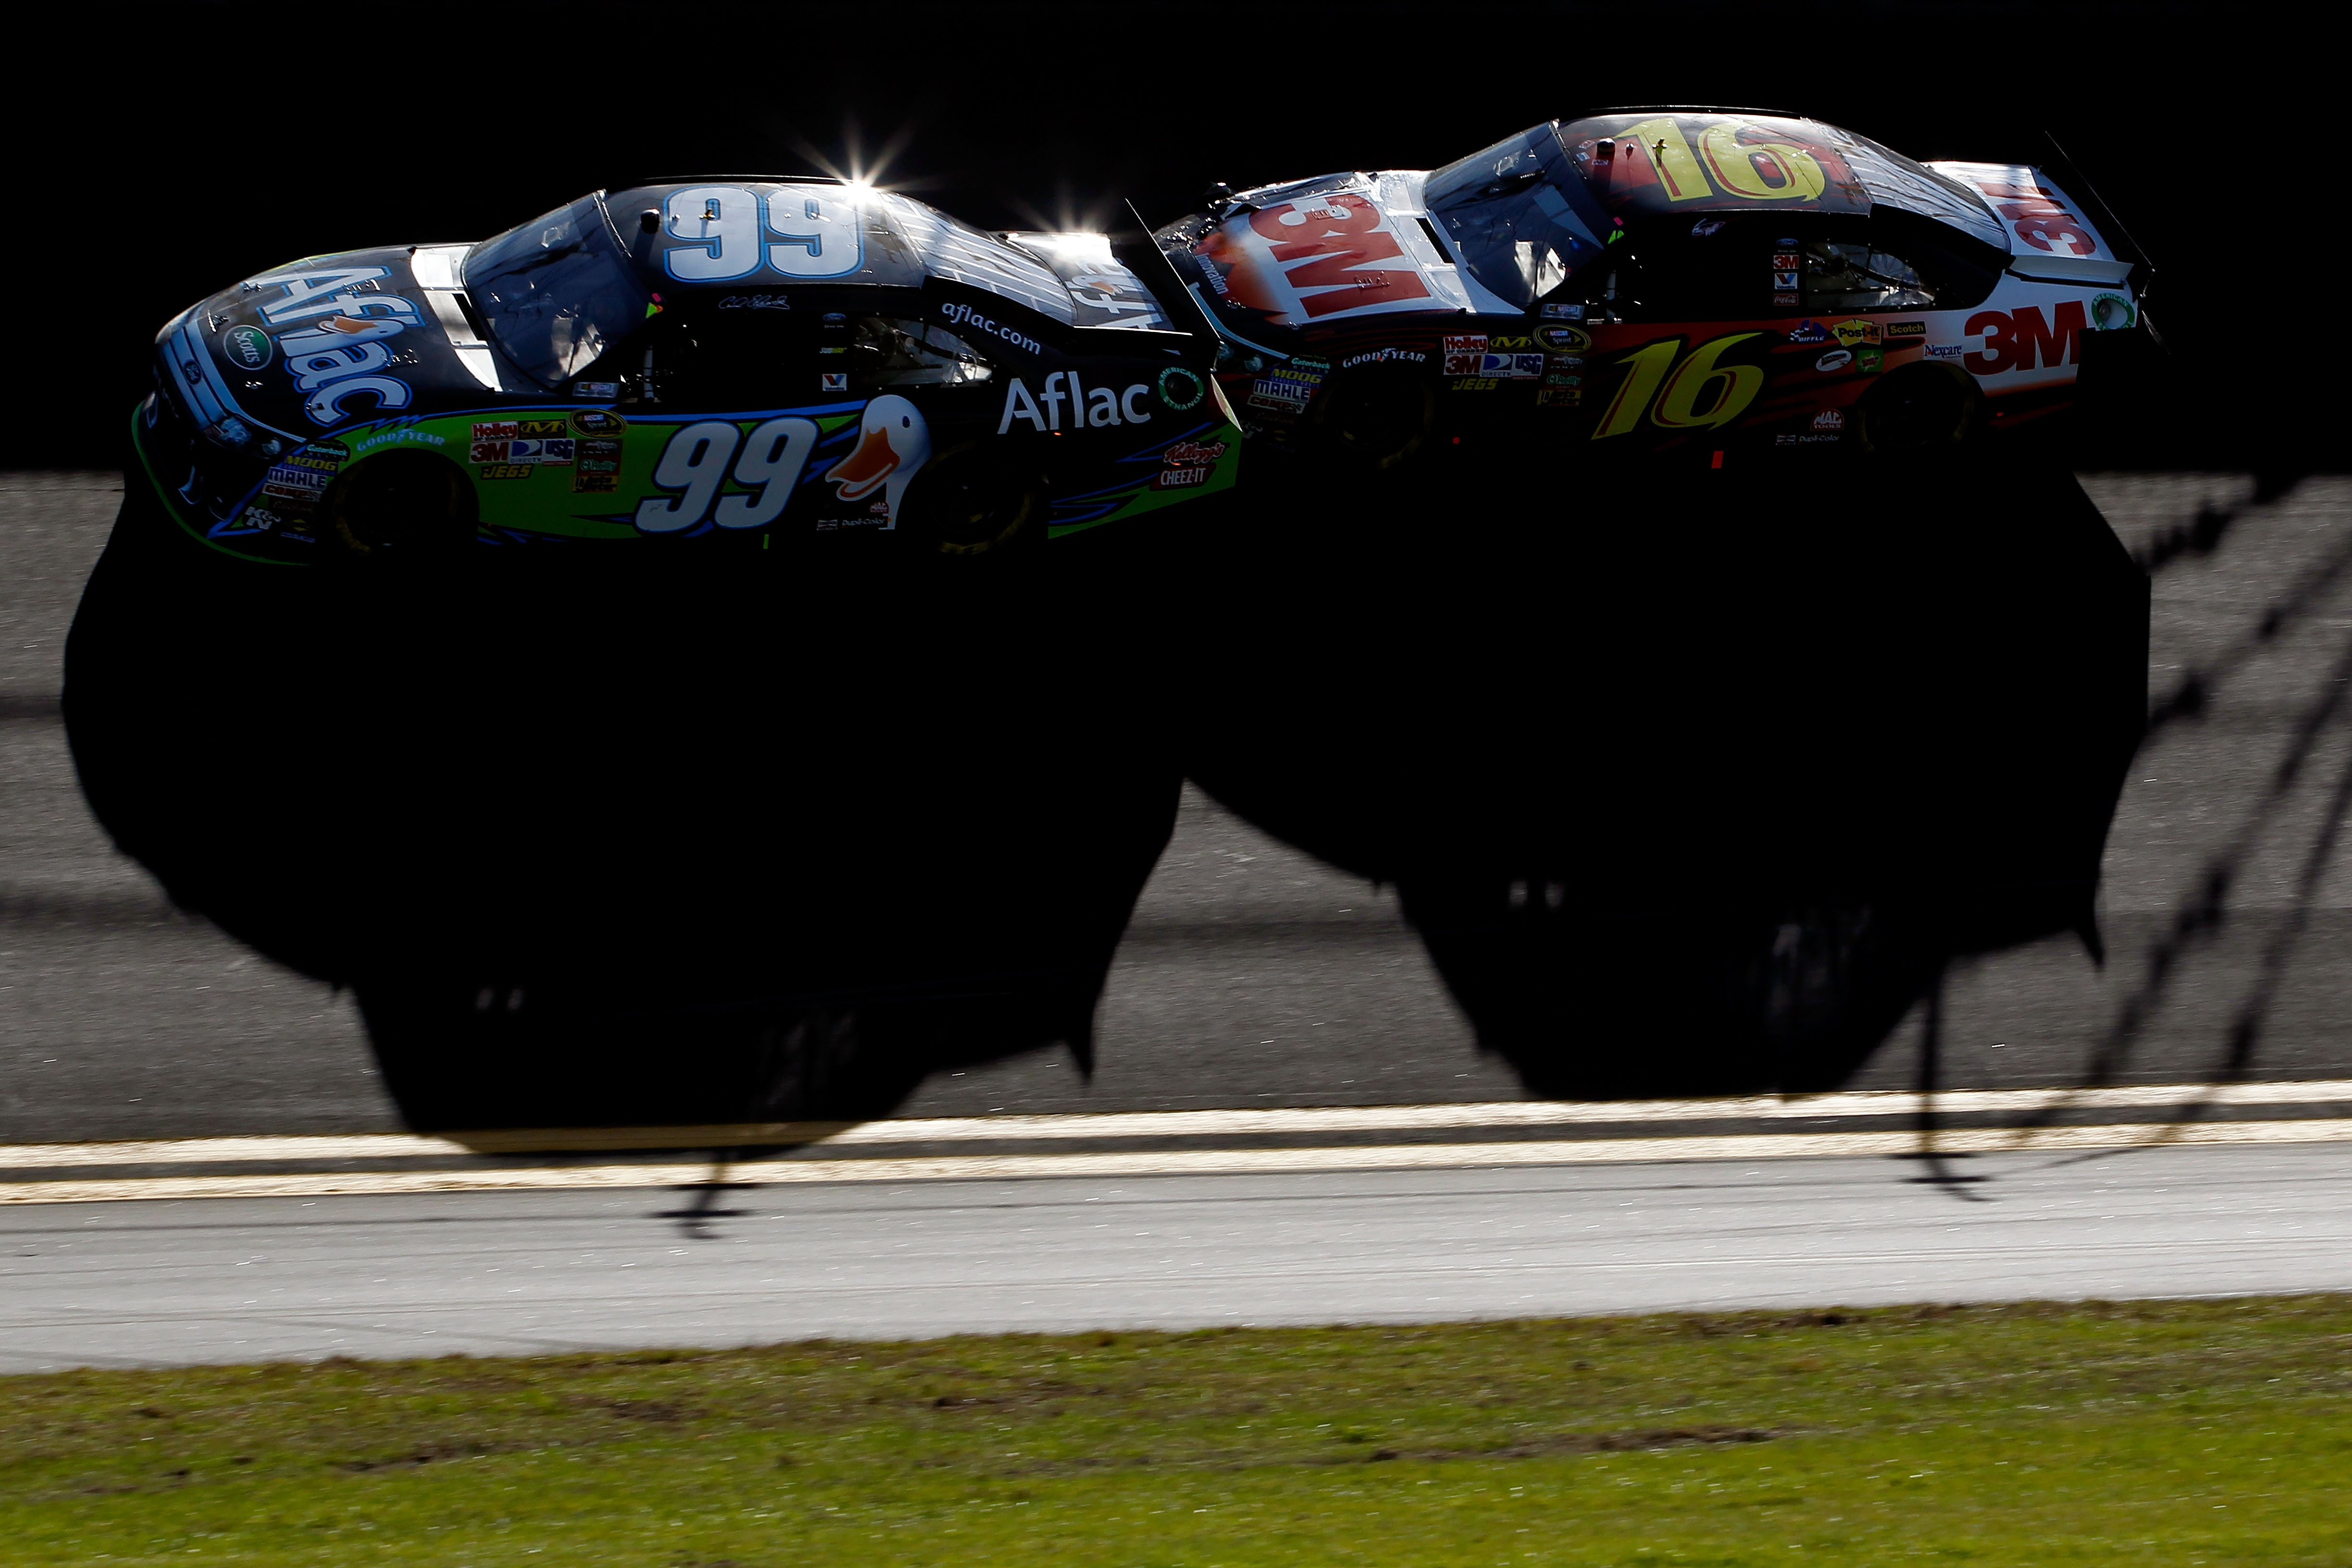 DAYTONA BEACH, FL - FEBRUARY 20:  Carl Edwards, driver of the #99 Aflac Ford, and Greg Biffle, driver of the #16 3M Ford, race during the NASCAR Sprint Cup Series Daytona 500 at Daytona International Speedway on February 20, 2011 in Daytona Beach, Florida